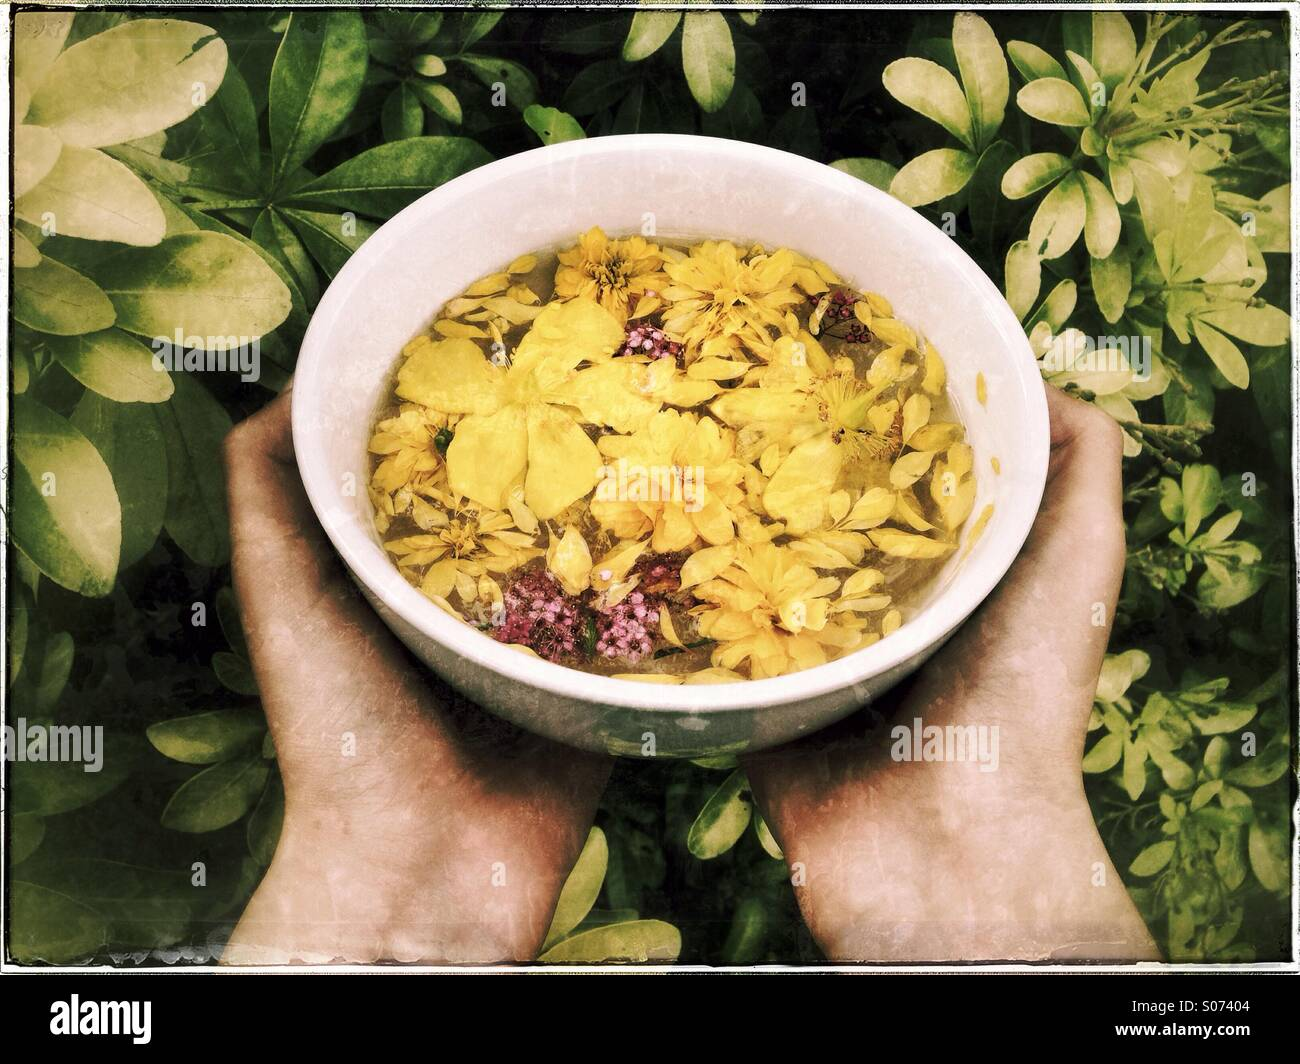 Bowl with flower petals - Stock Image